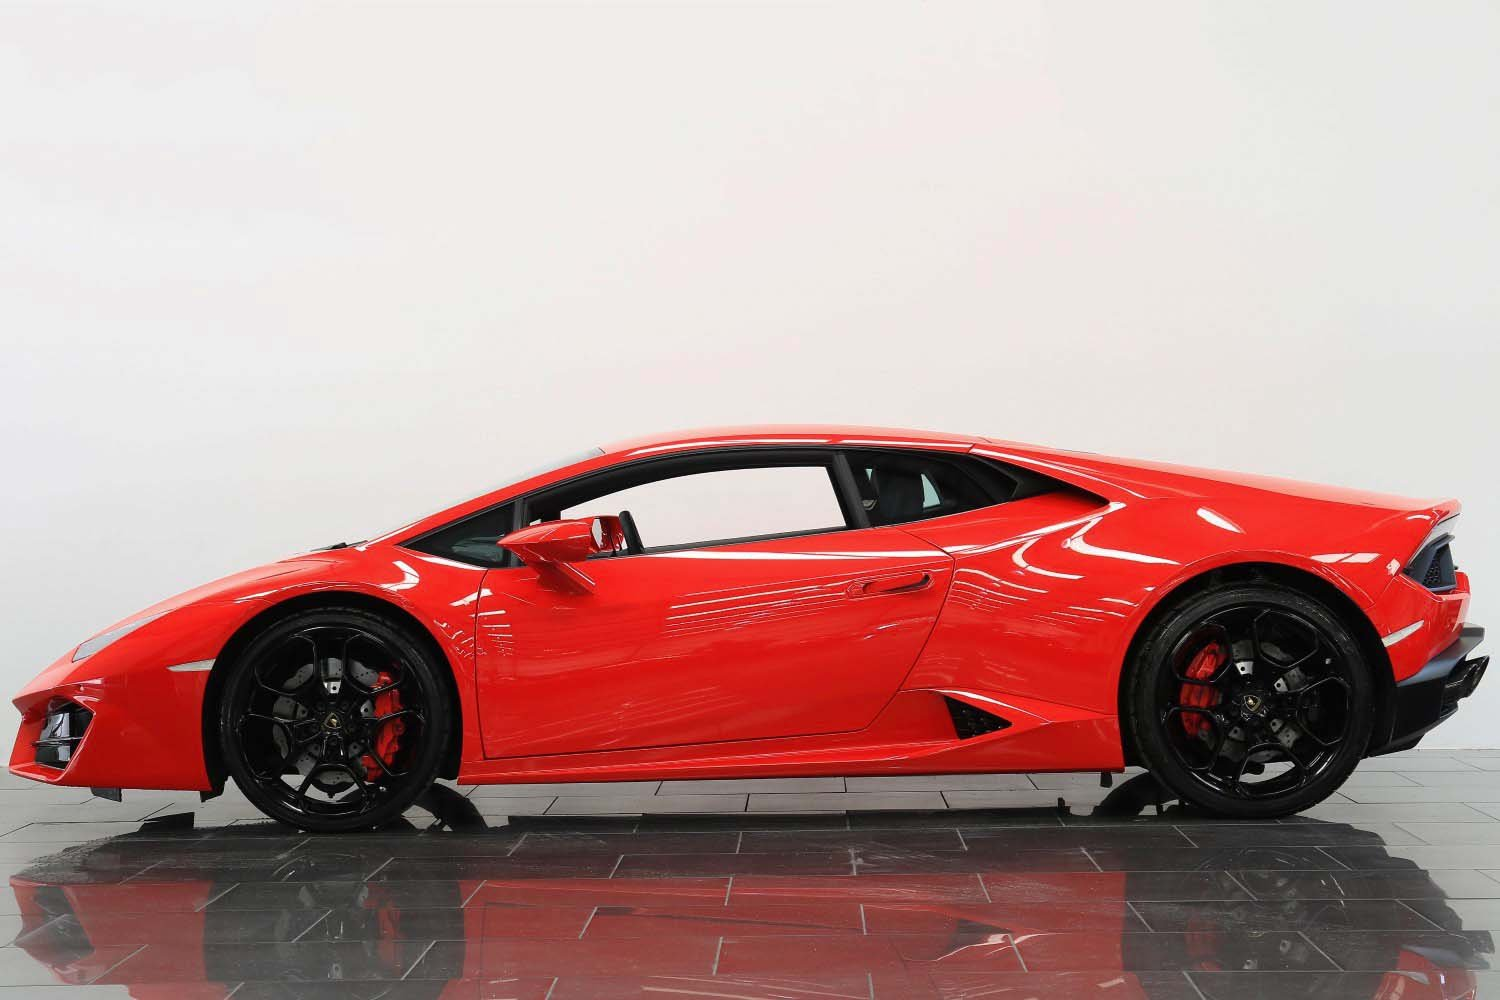 2016 16 16 LAMBORGHINI HURACAN LP 580-2 5.2 V10 AUTO For Sale (picture 2 of 6)